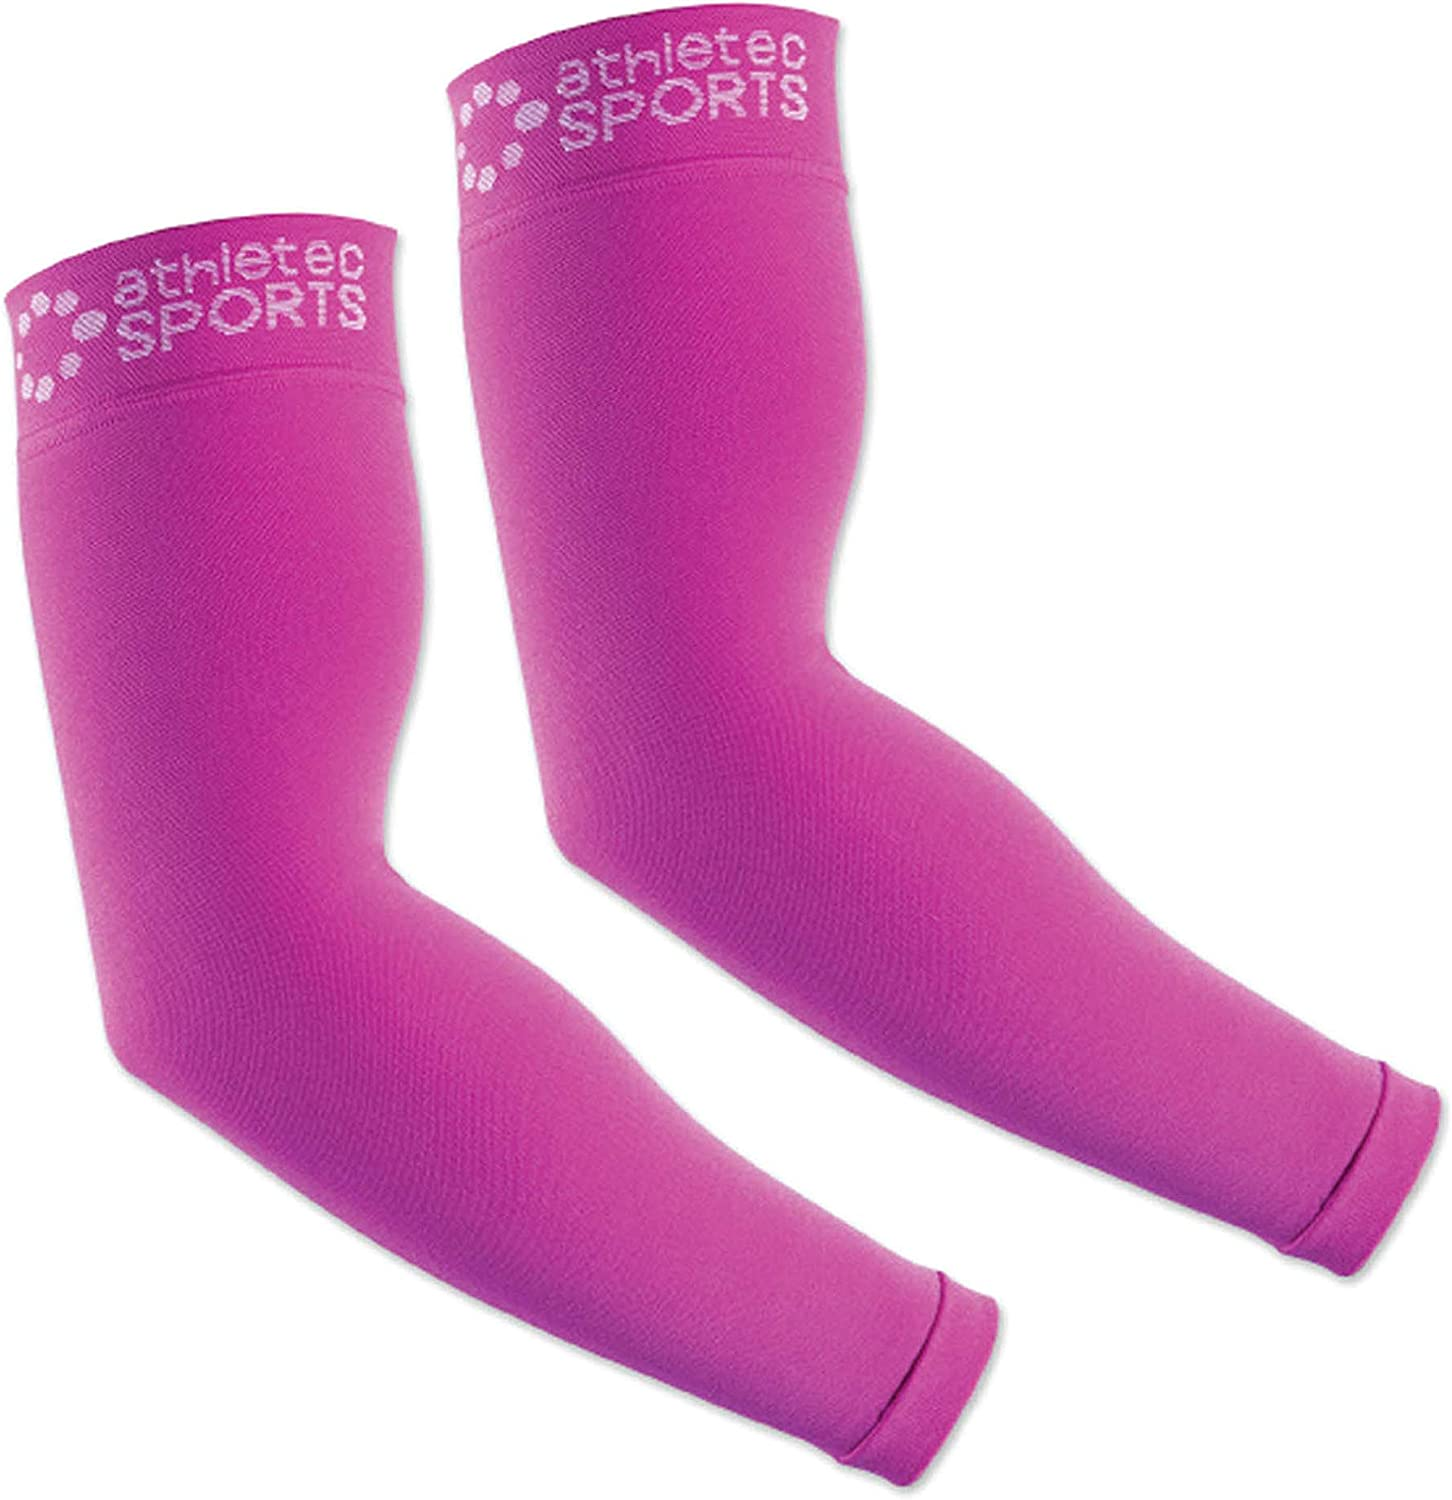 DII Compression shopping Challenge the lowest price Arm Sleeves Pink L XL Hot